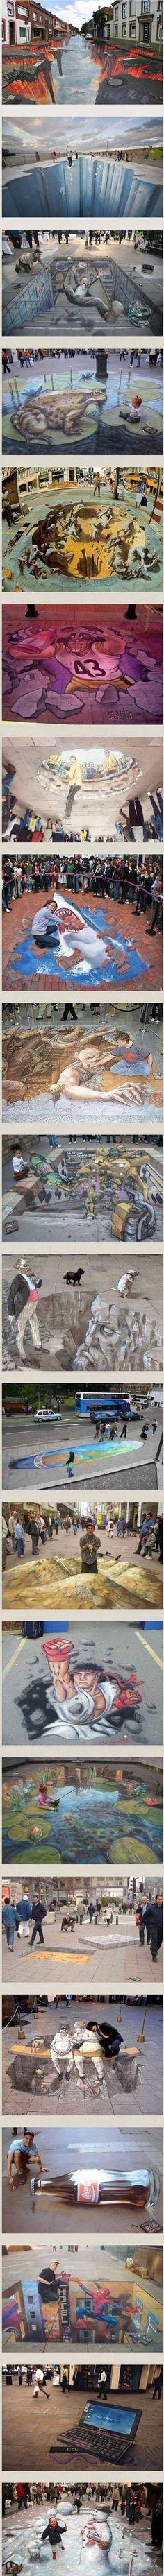 BEST 3D Sidewalk Arts